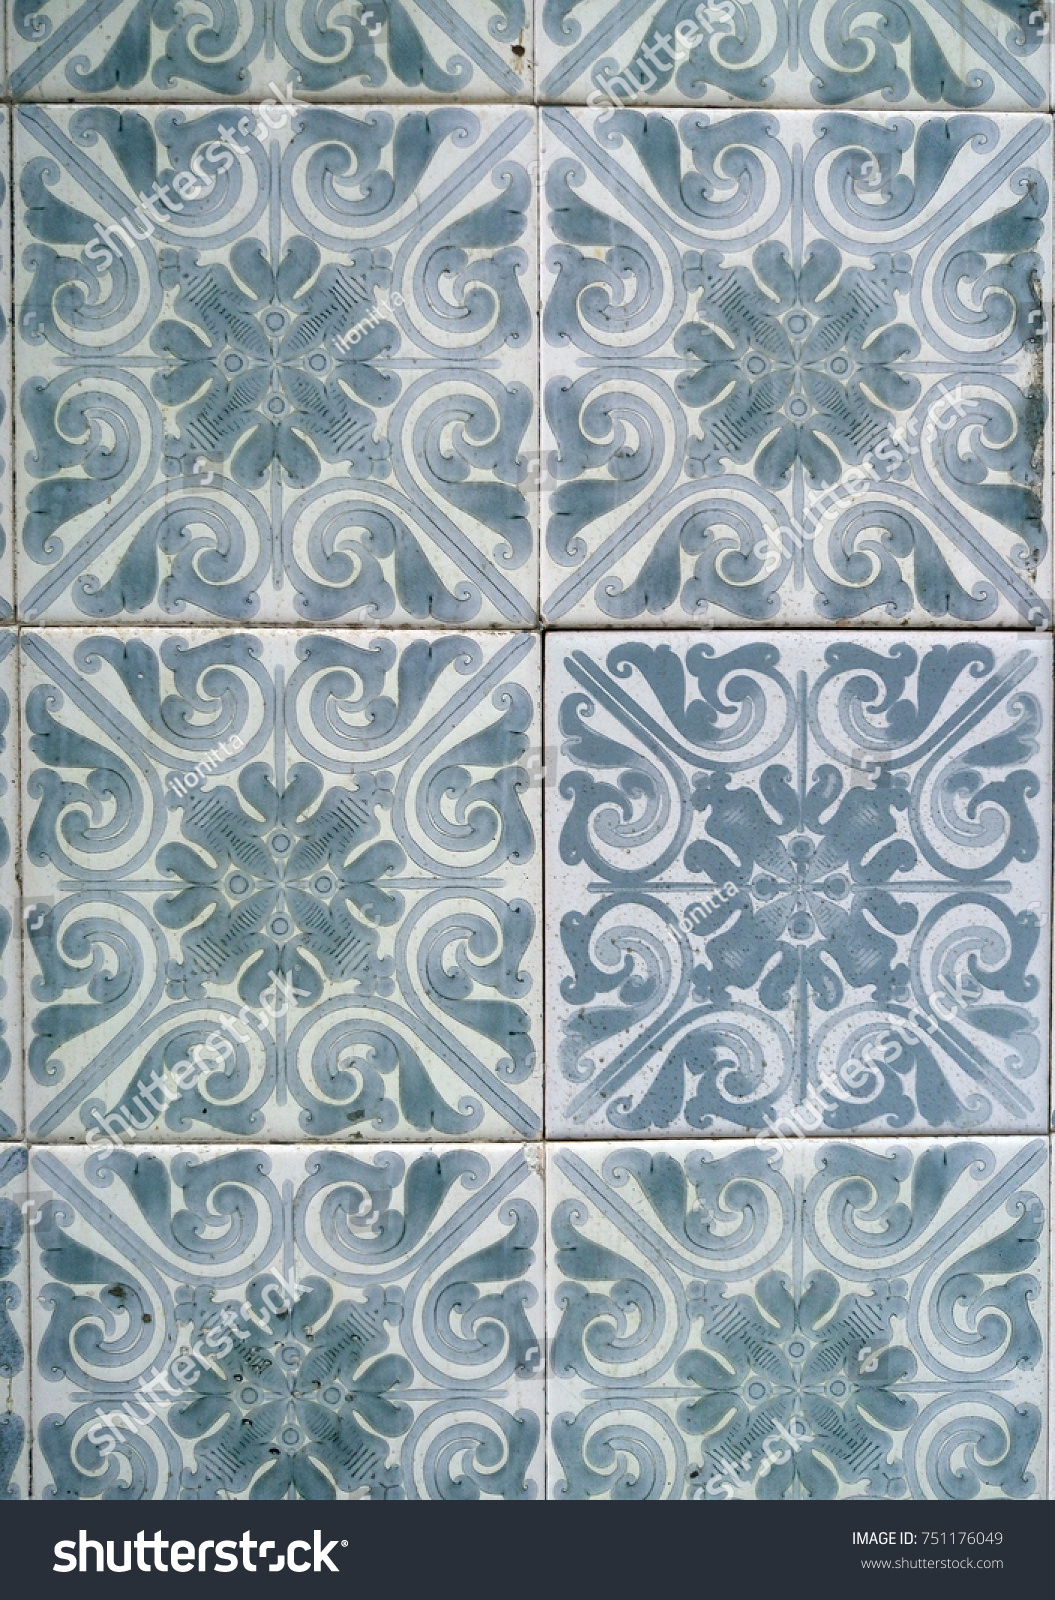 Typical Ornament Portuguese Ceramic Tiles Patterned Stock Photo ...